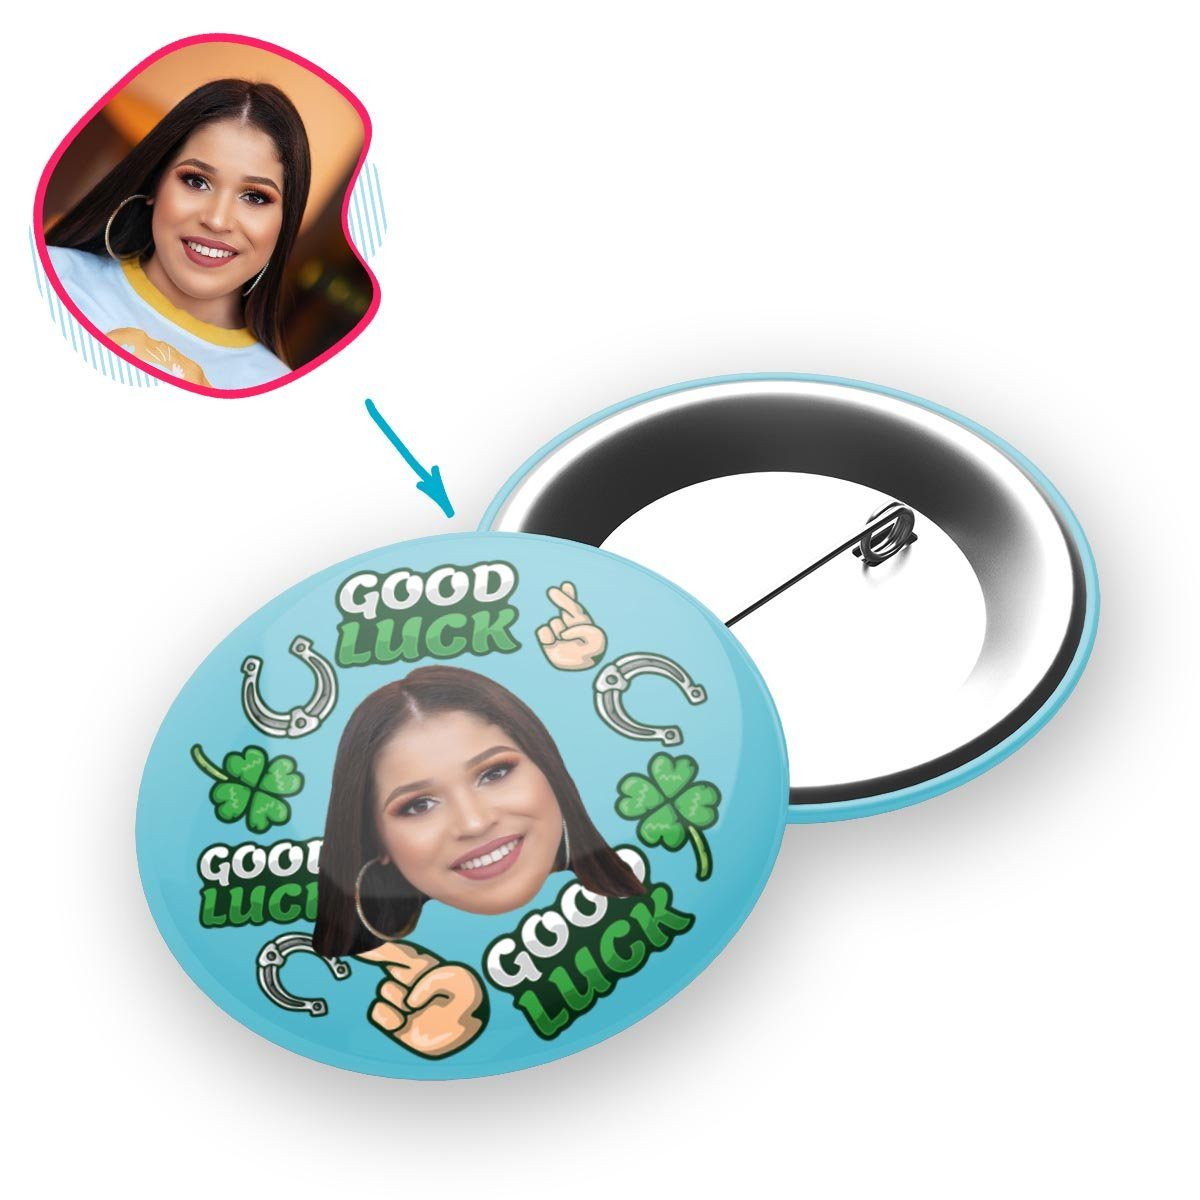 Blue Good Luck personalized pin with photo of face printed on it